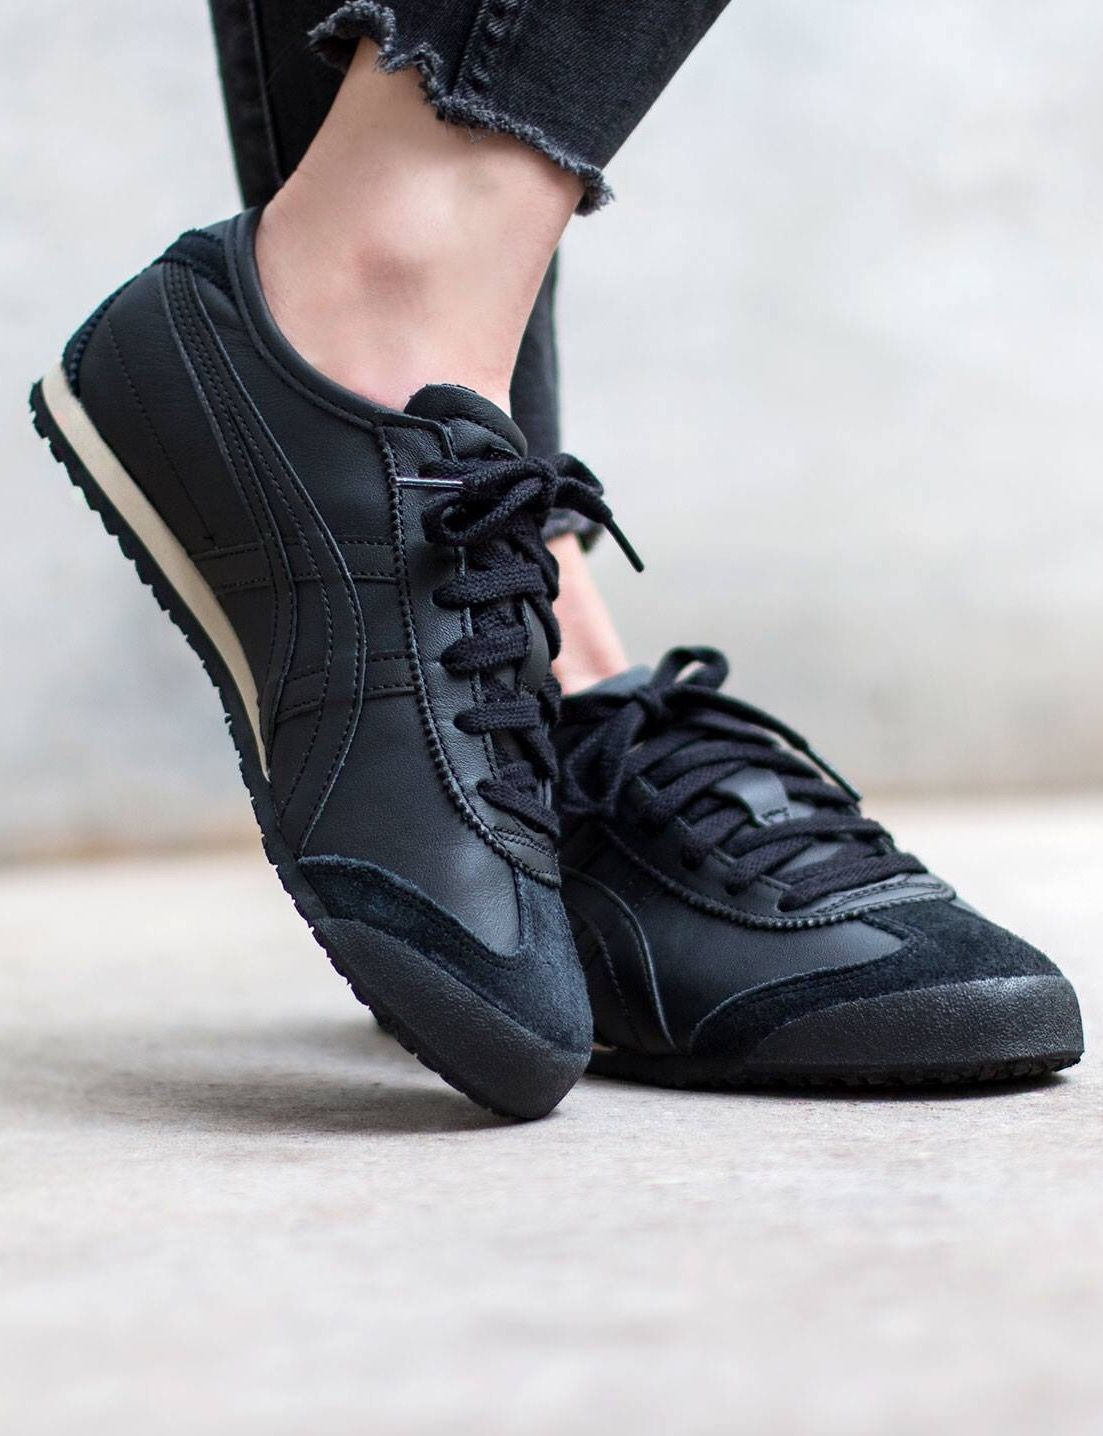 Pin On Asics Shoes